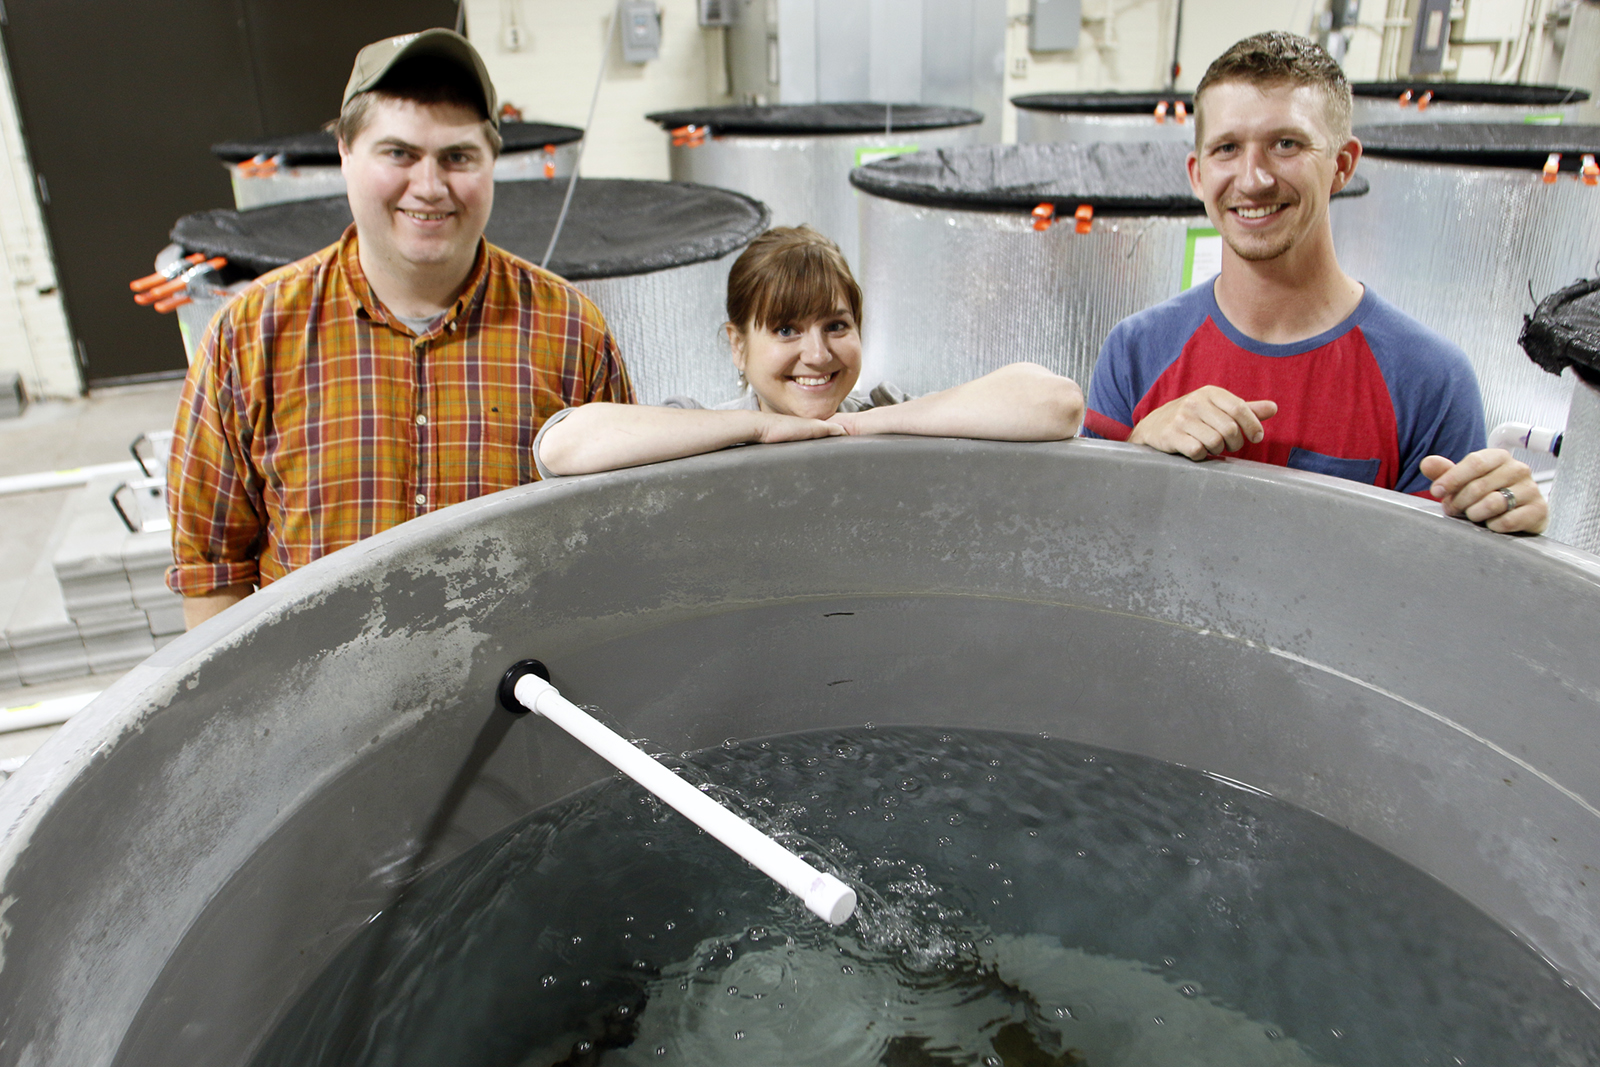 Jamilynn Poletto, fish physiologist with the School of Natural Resources, transformed an old East Campus building into a cutting-edge fish research laboratory space. With her here are Alex Engel (left) and Zach Horstman, both graduate students at SNR. | S